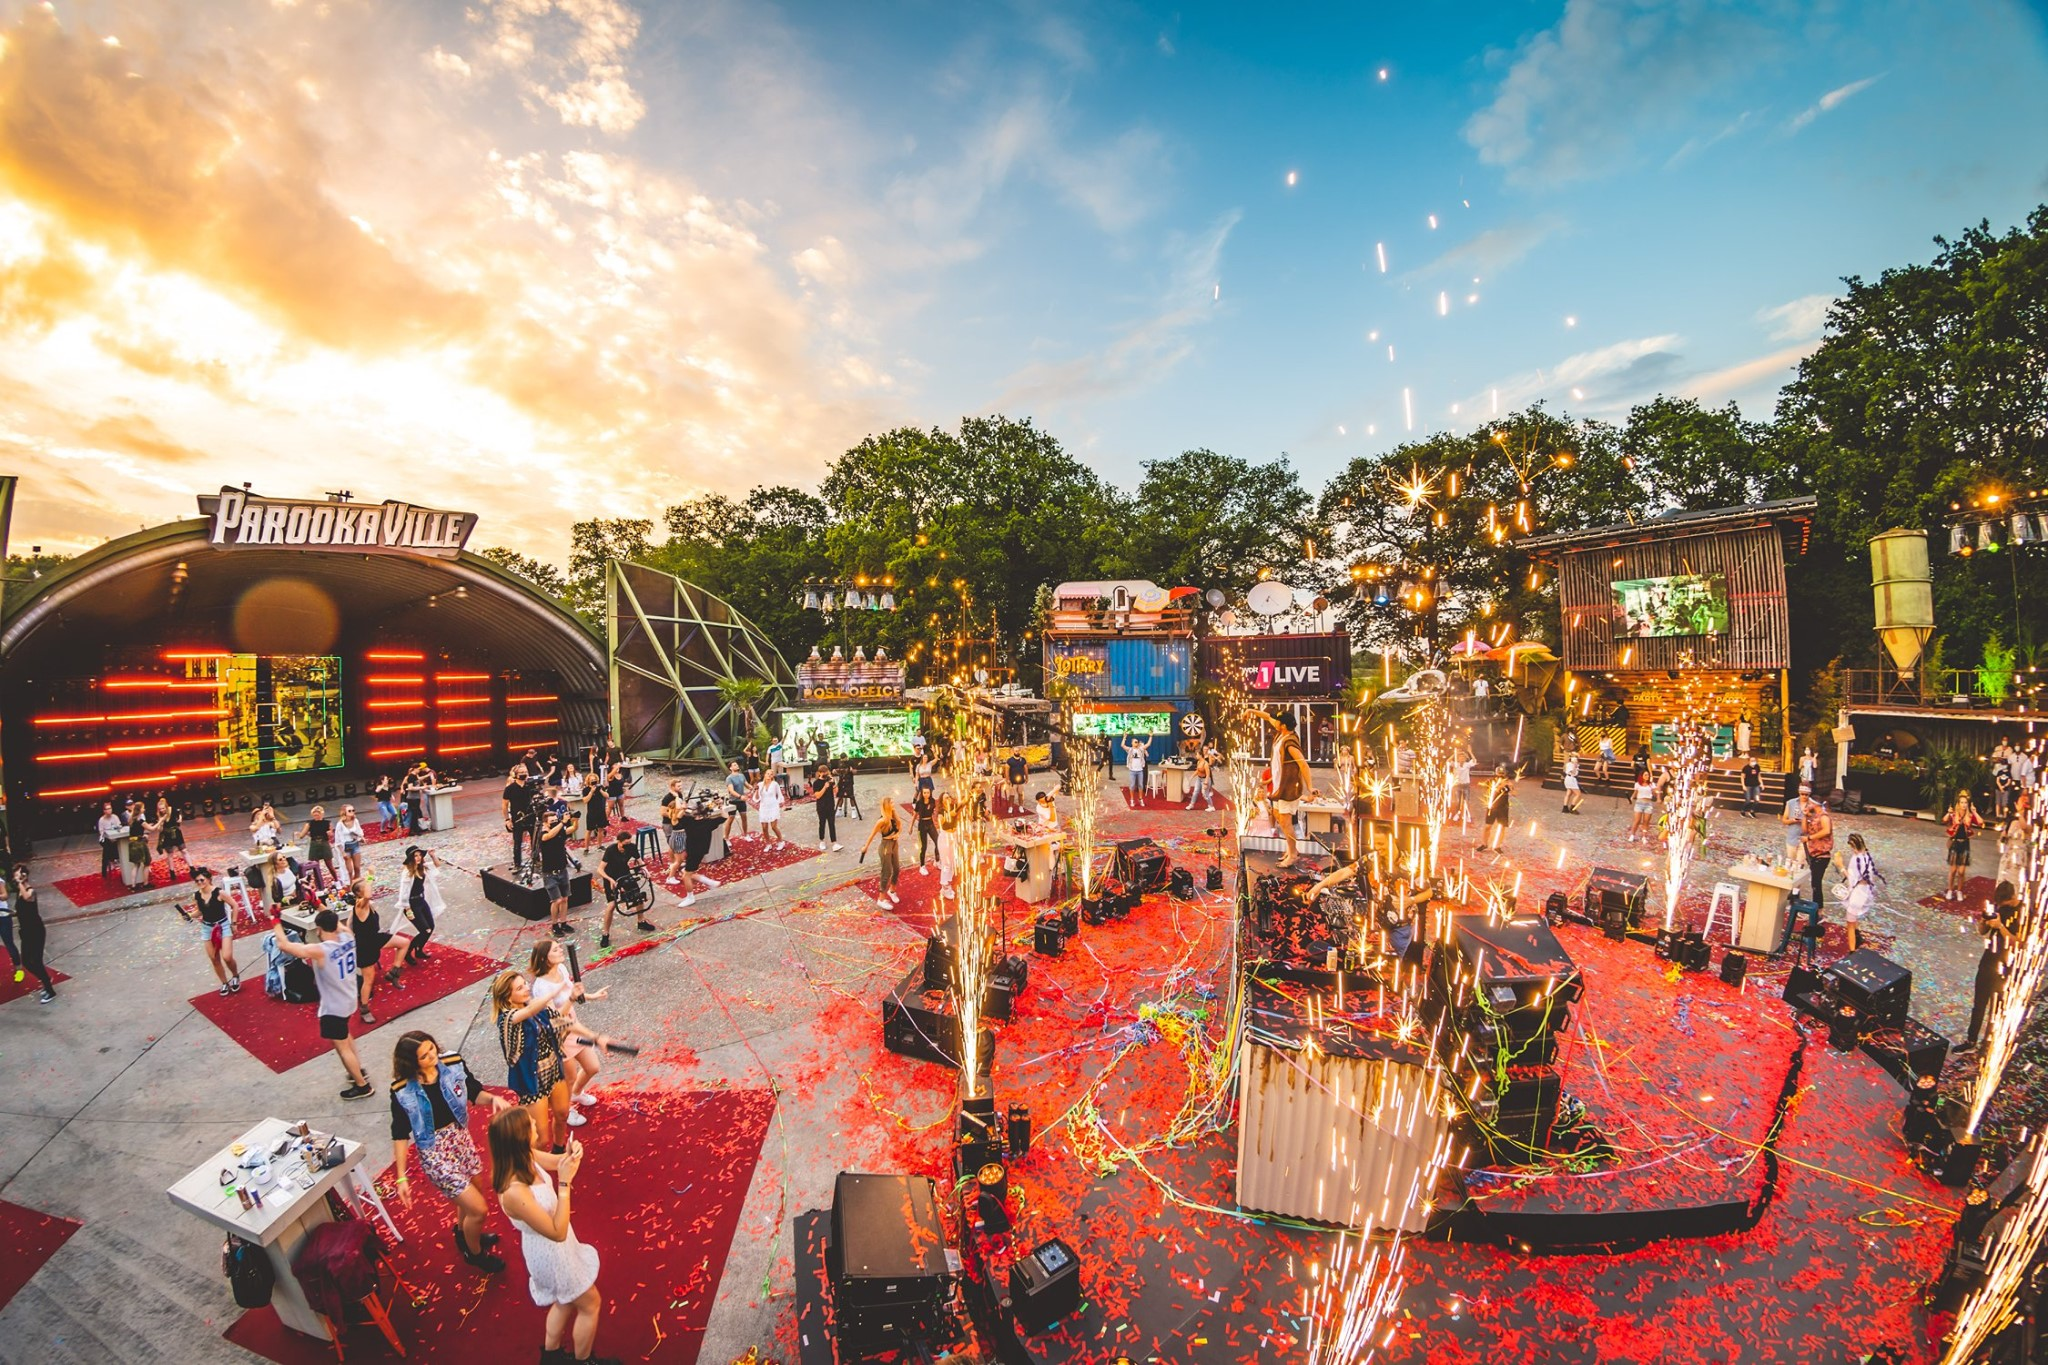 PAROOKAVILLE – LIVE from the City 1